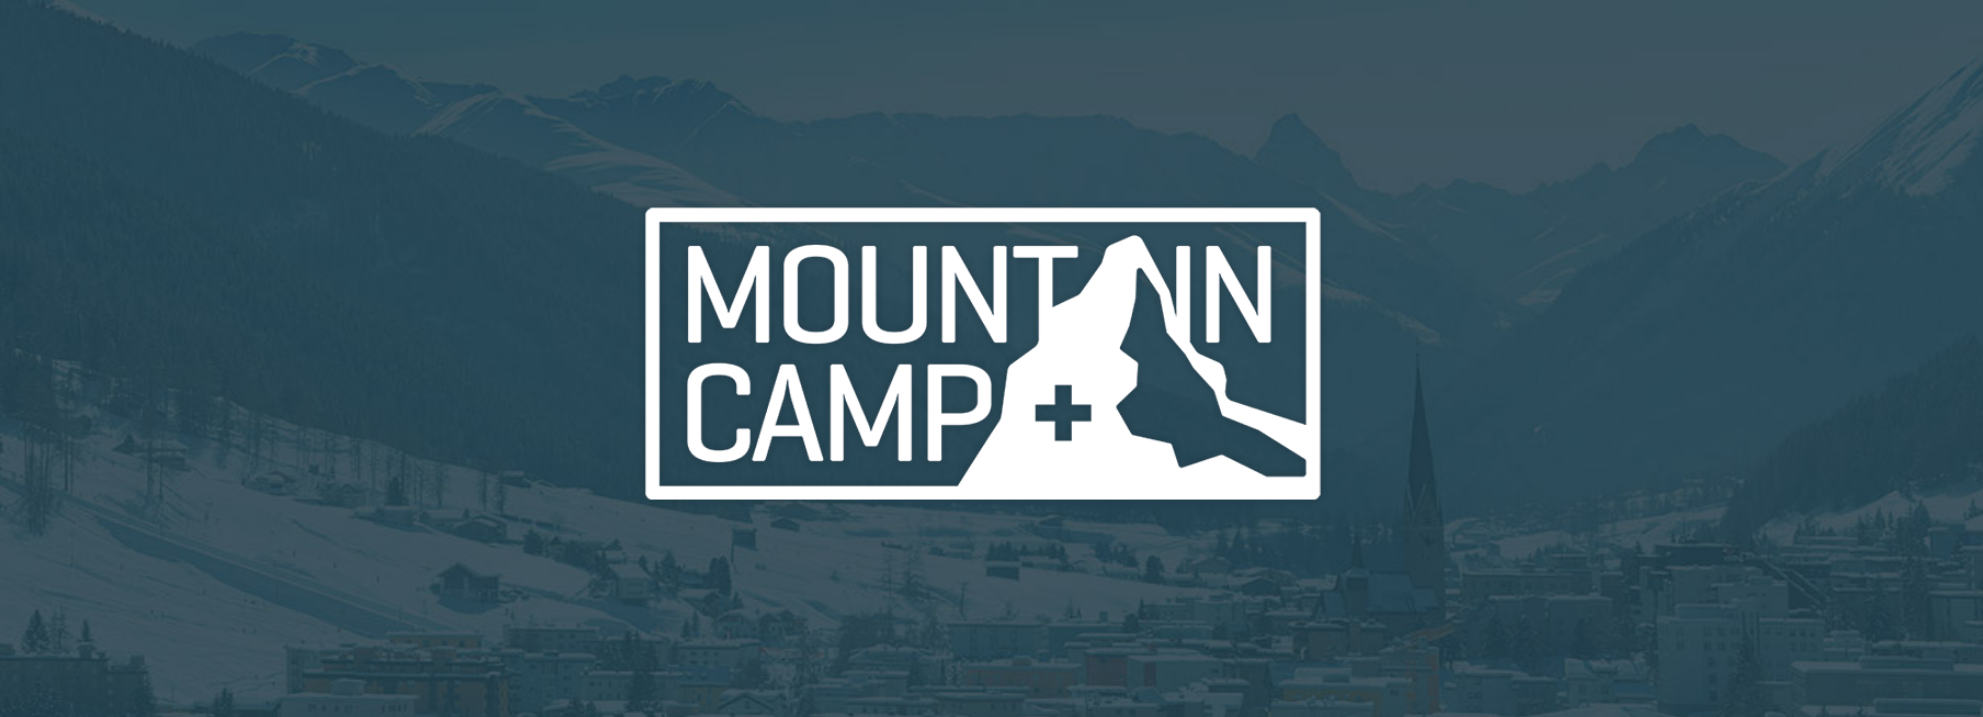 drupal mountain camp